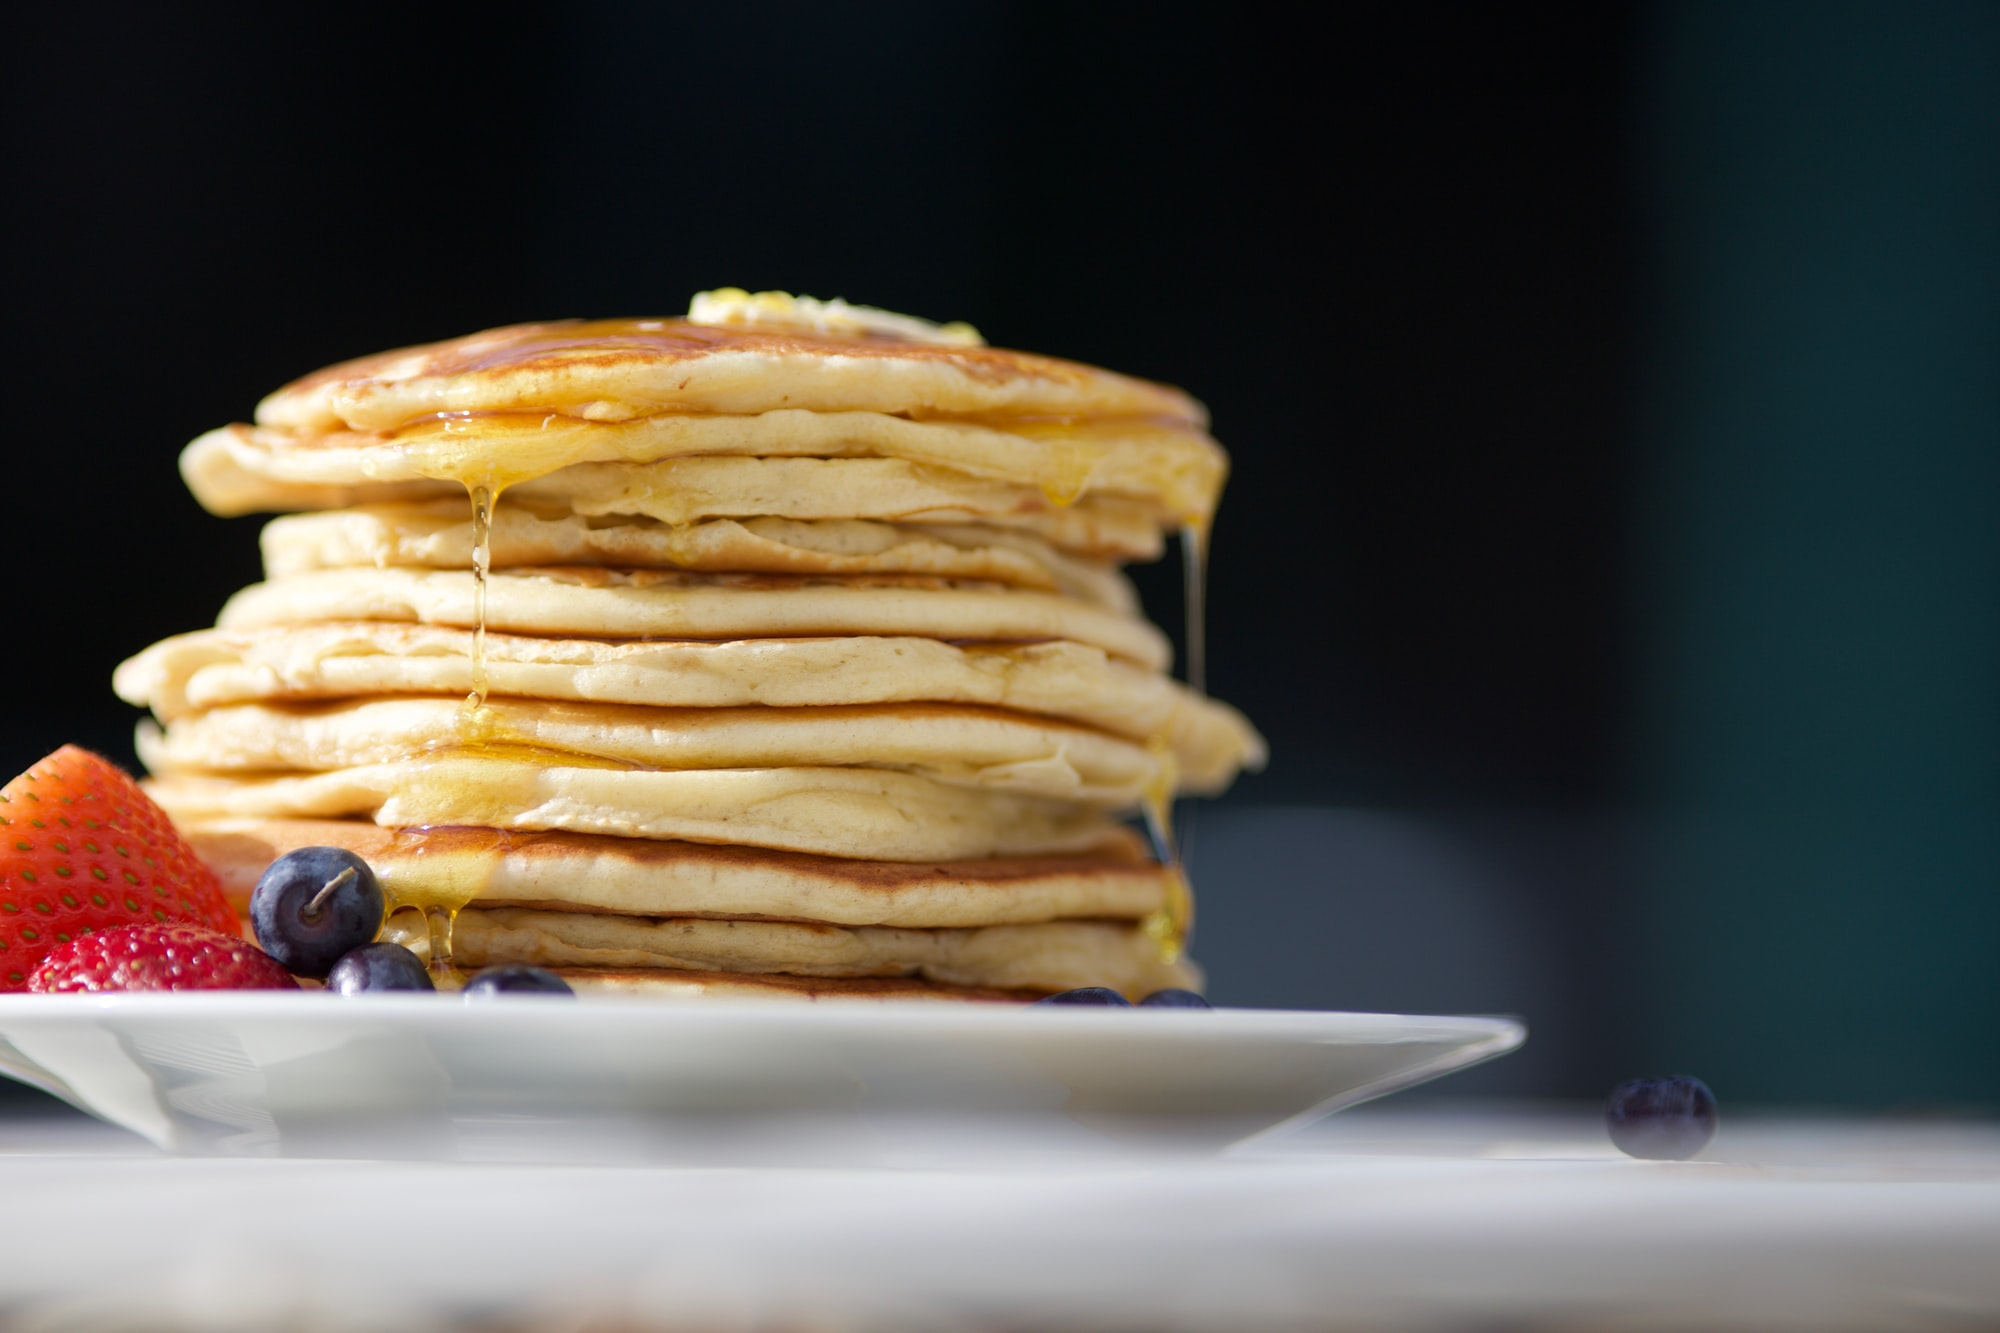 The 4 Pancakes Of Great Design